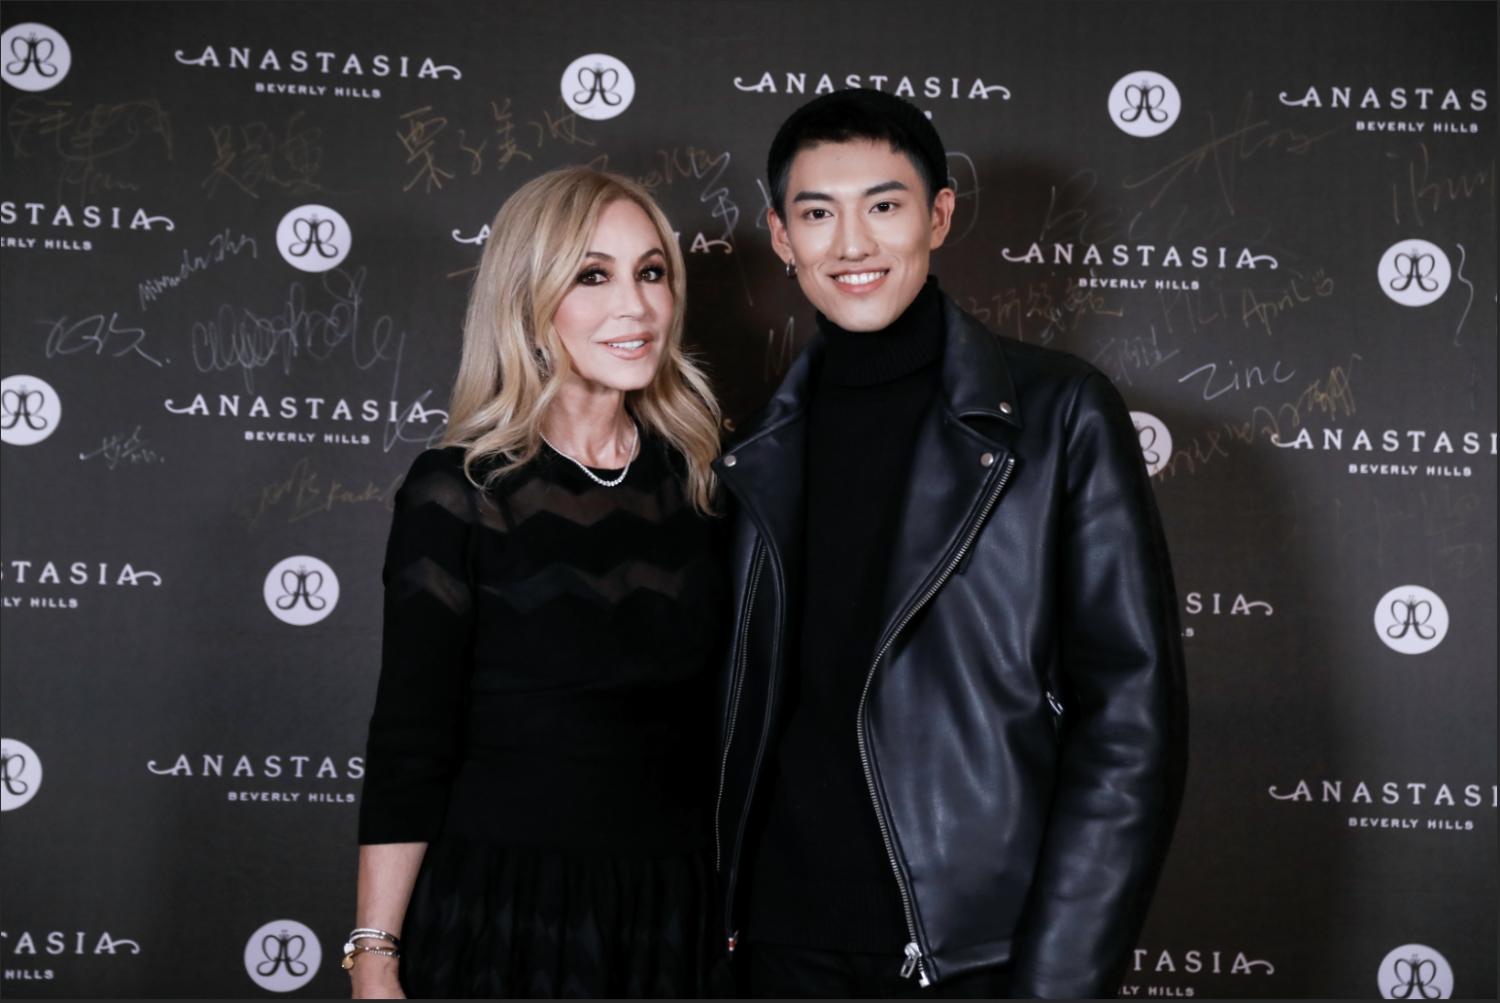 Anastasia with Influencer at event in Shanghai